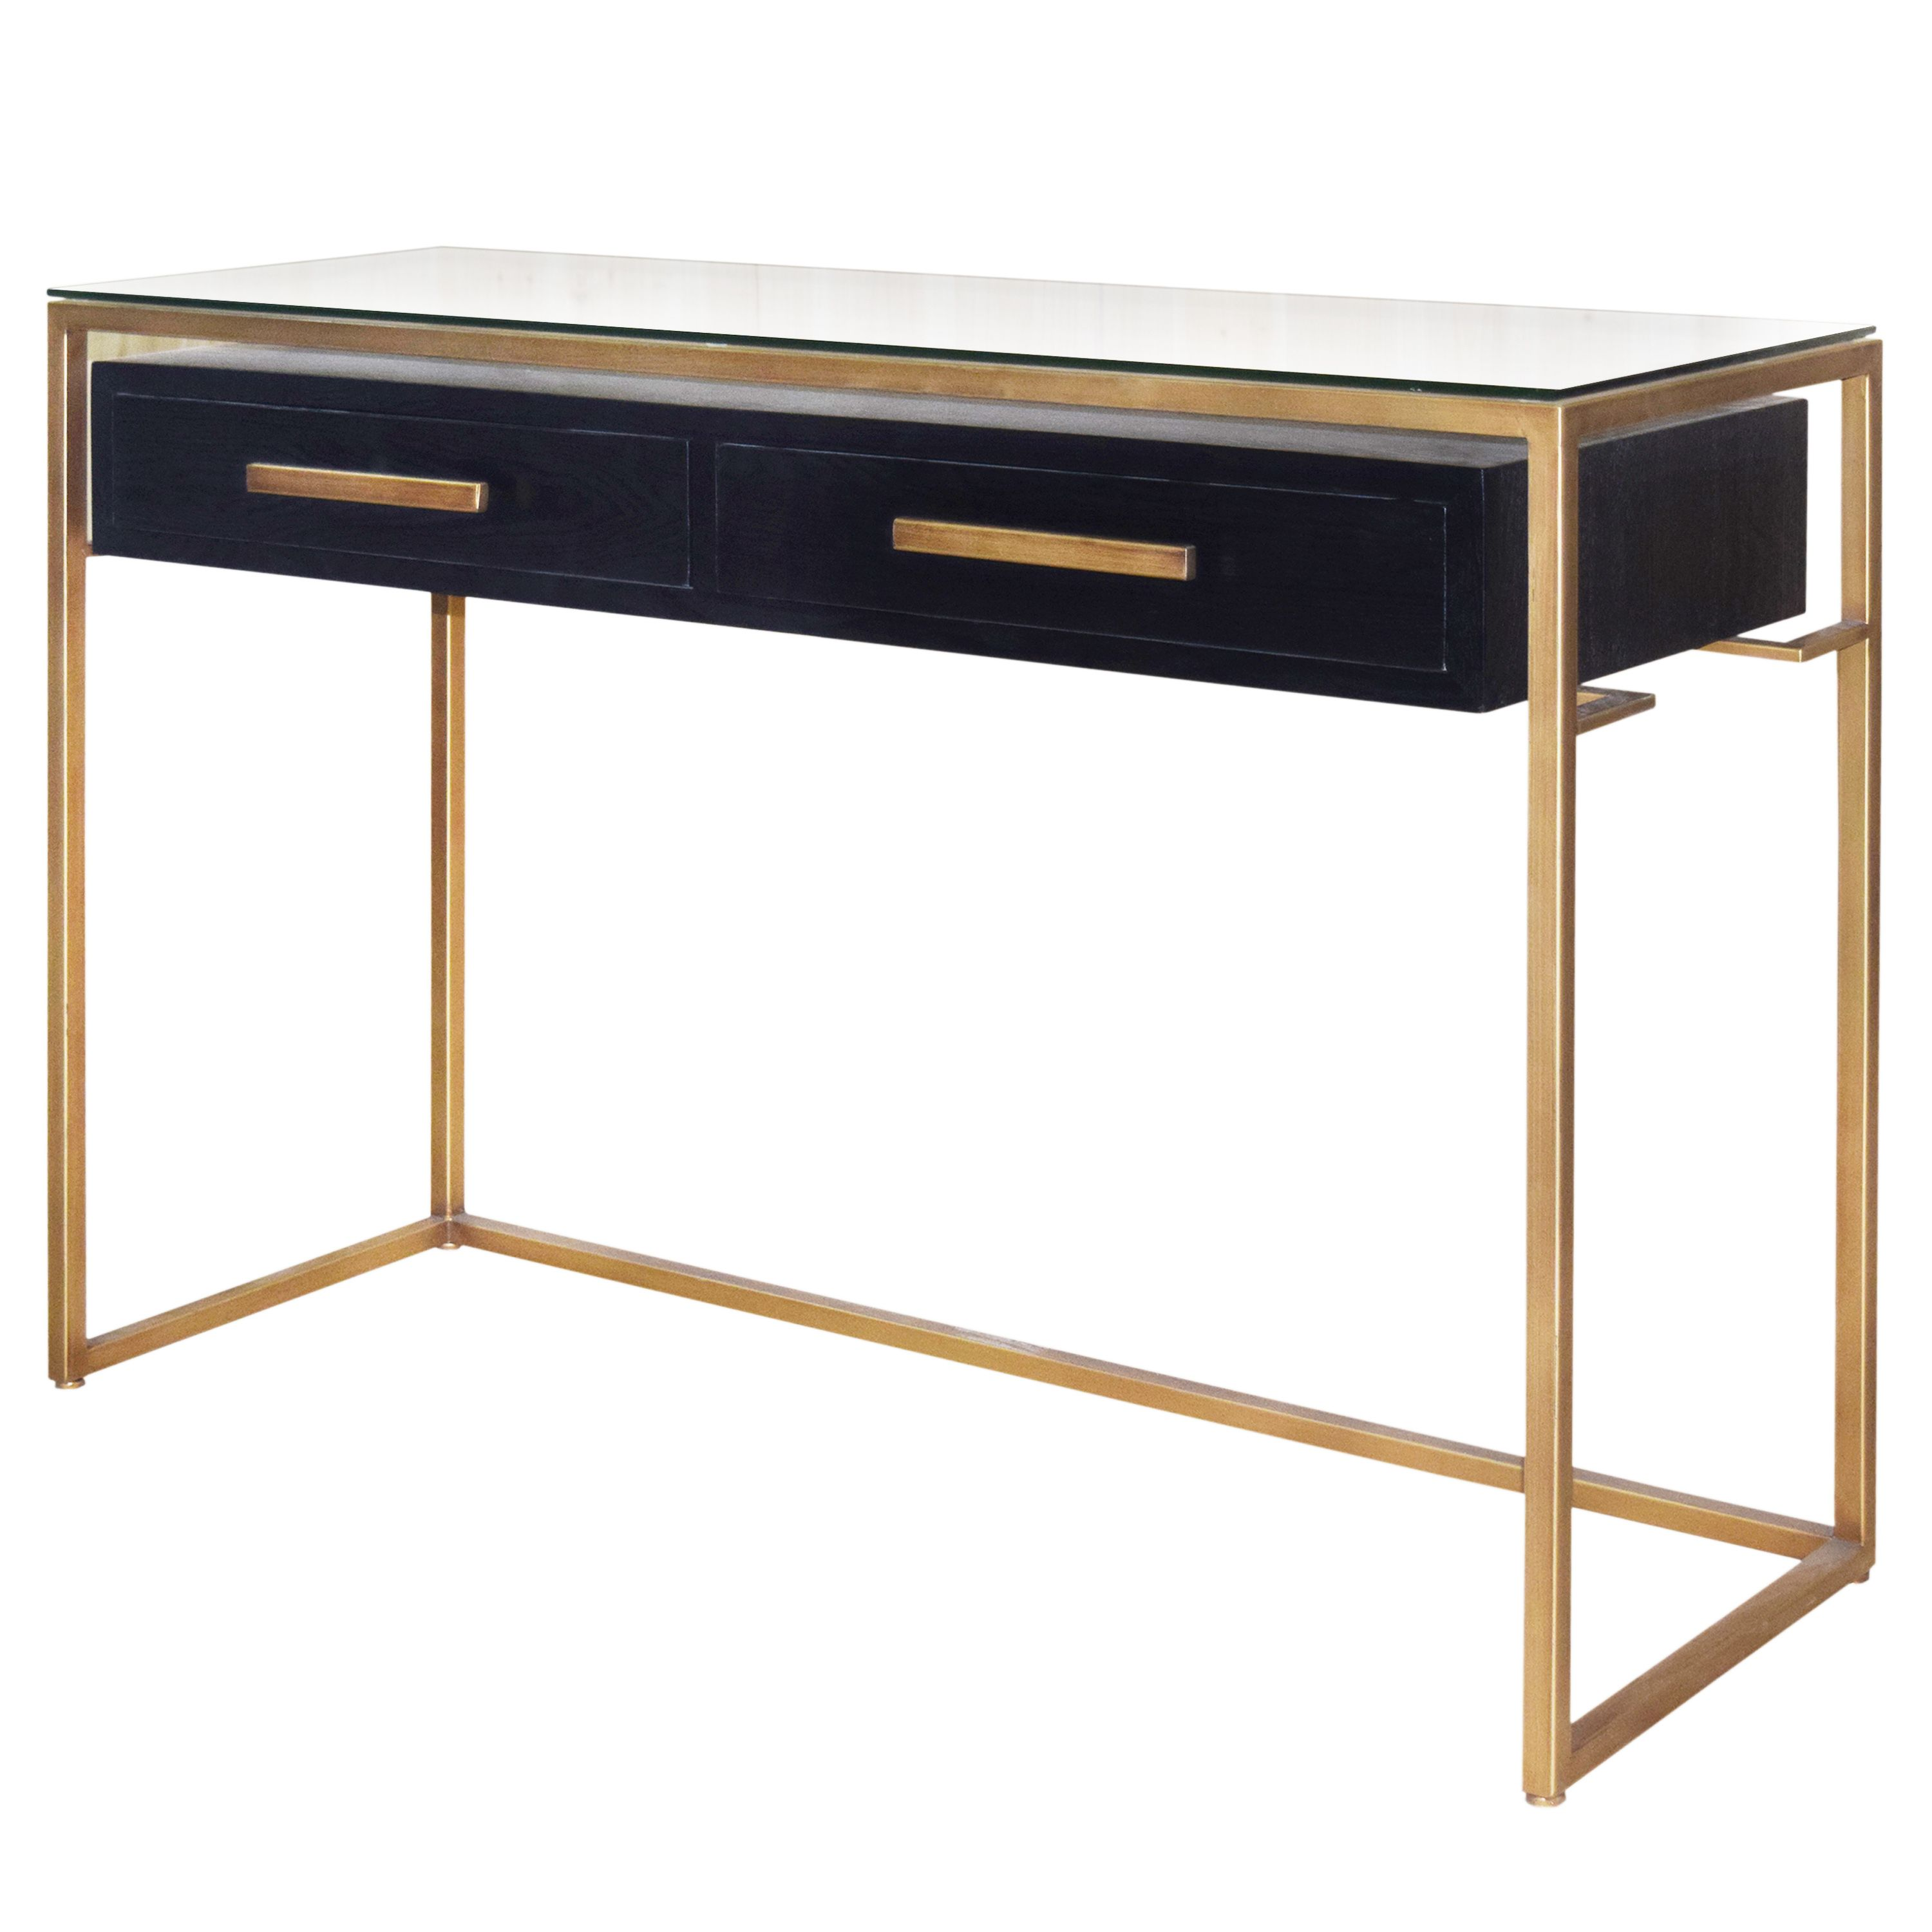 firenze floating console table 2 drawers gold frame in espresso material mdf ash veneer iron